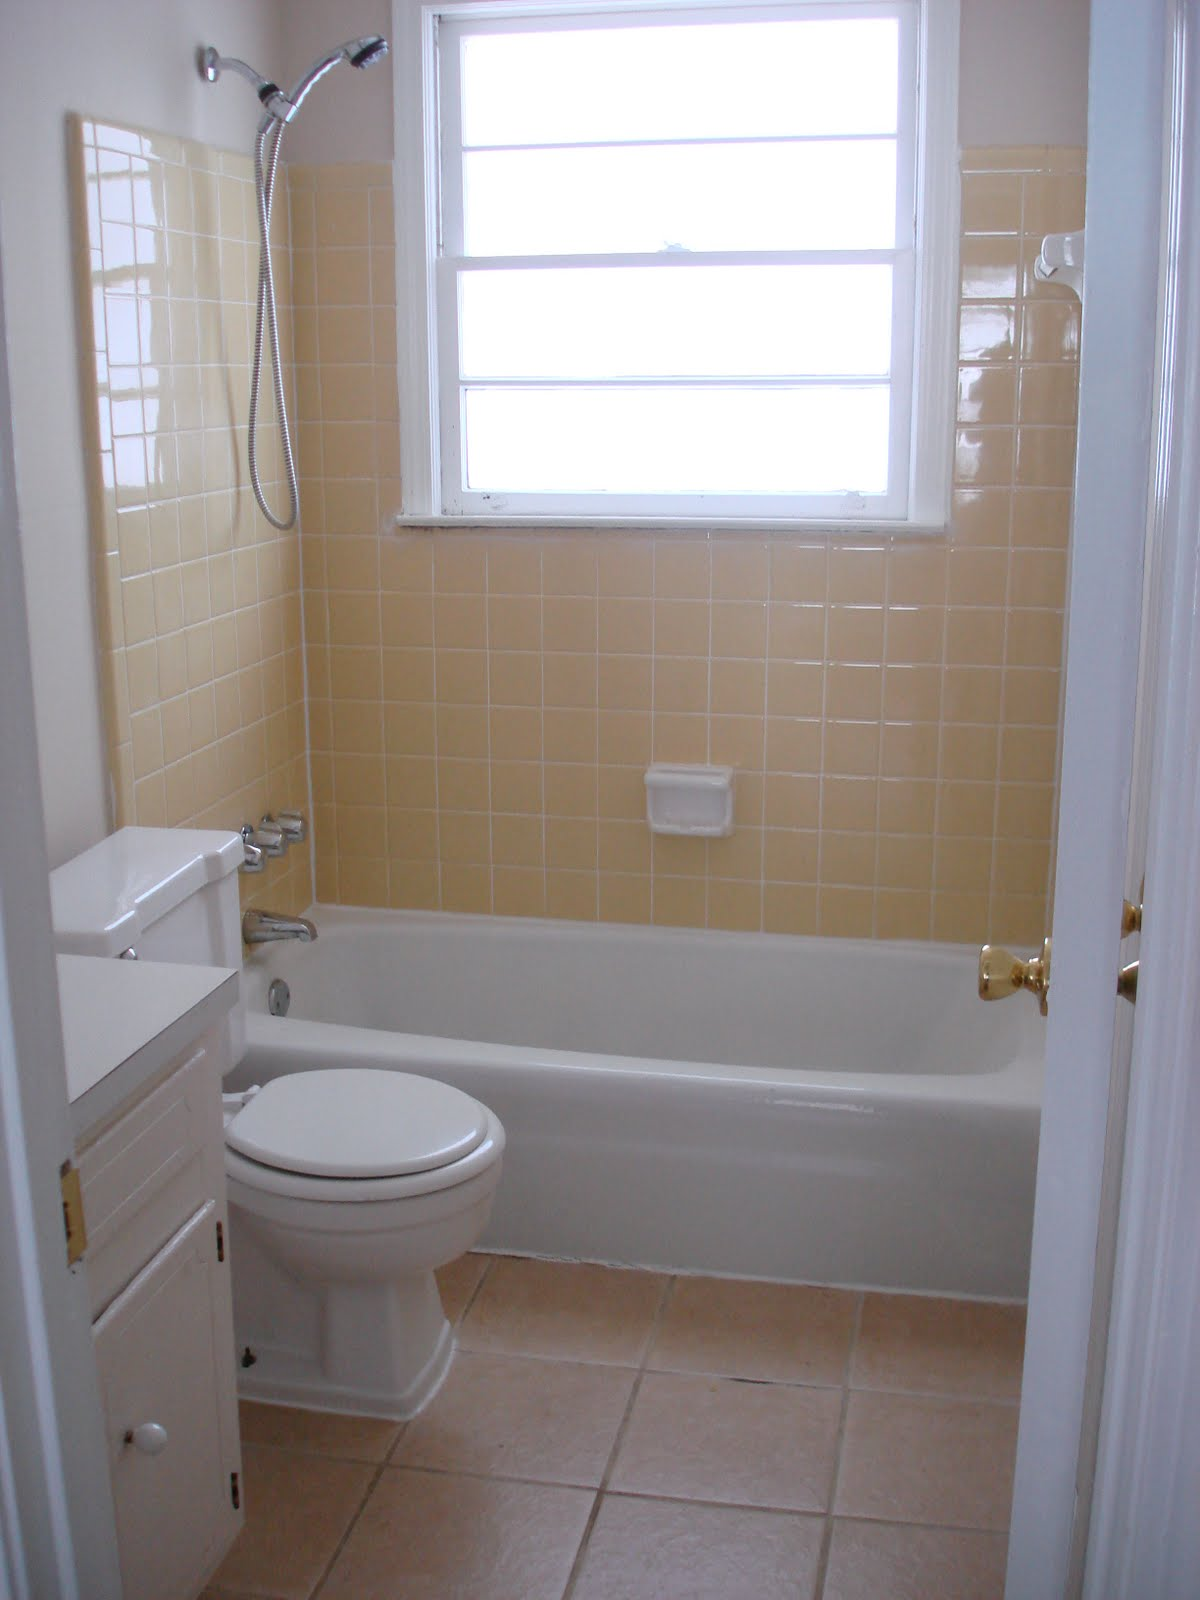 It's Not Rocket Science: RIP, Yellow Bathroom Tile, Or